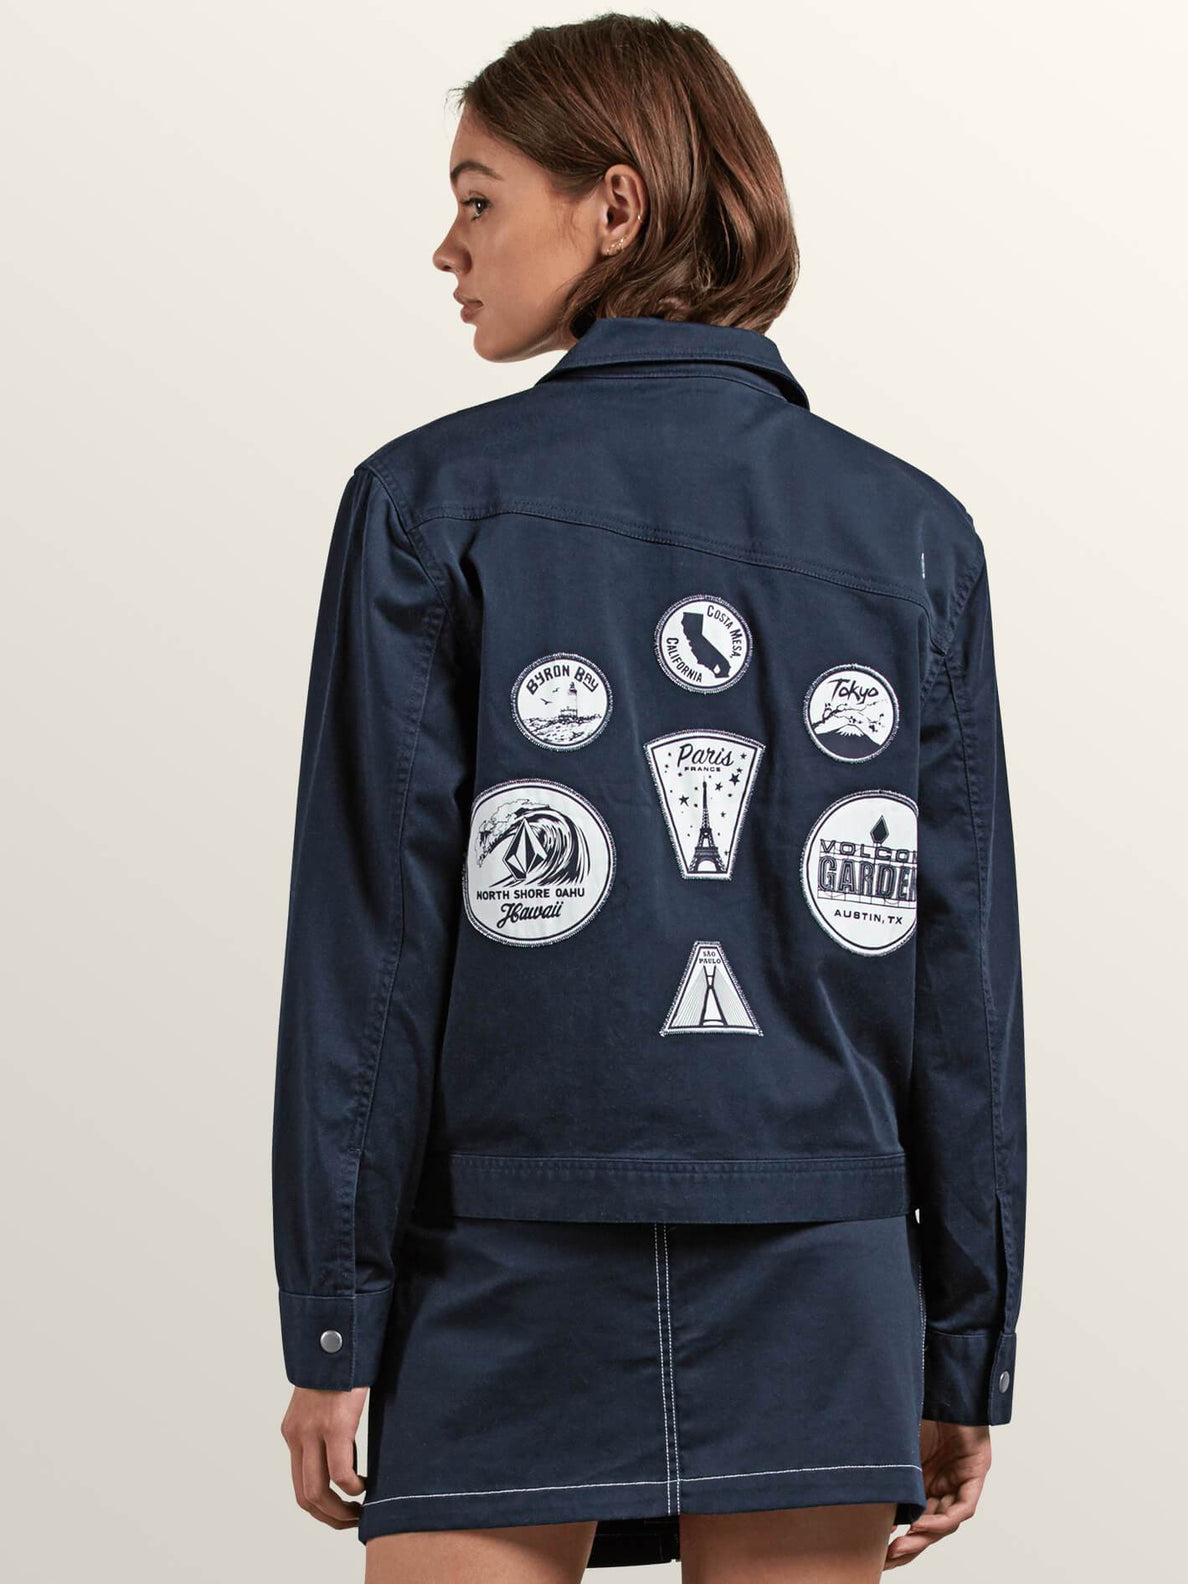 Frochickie Jacket In Navy, Back View